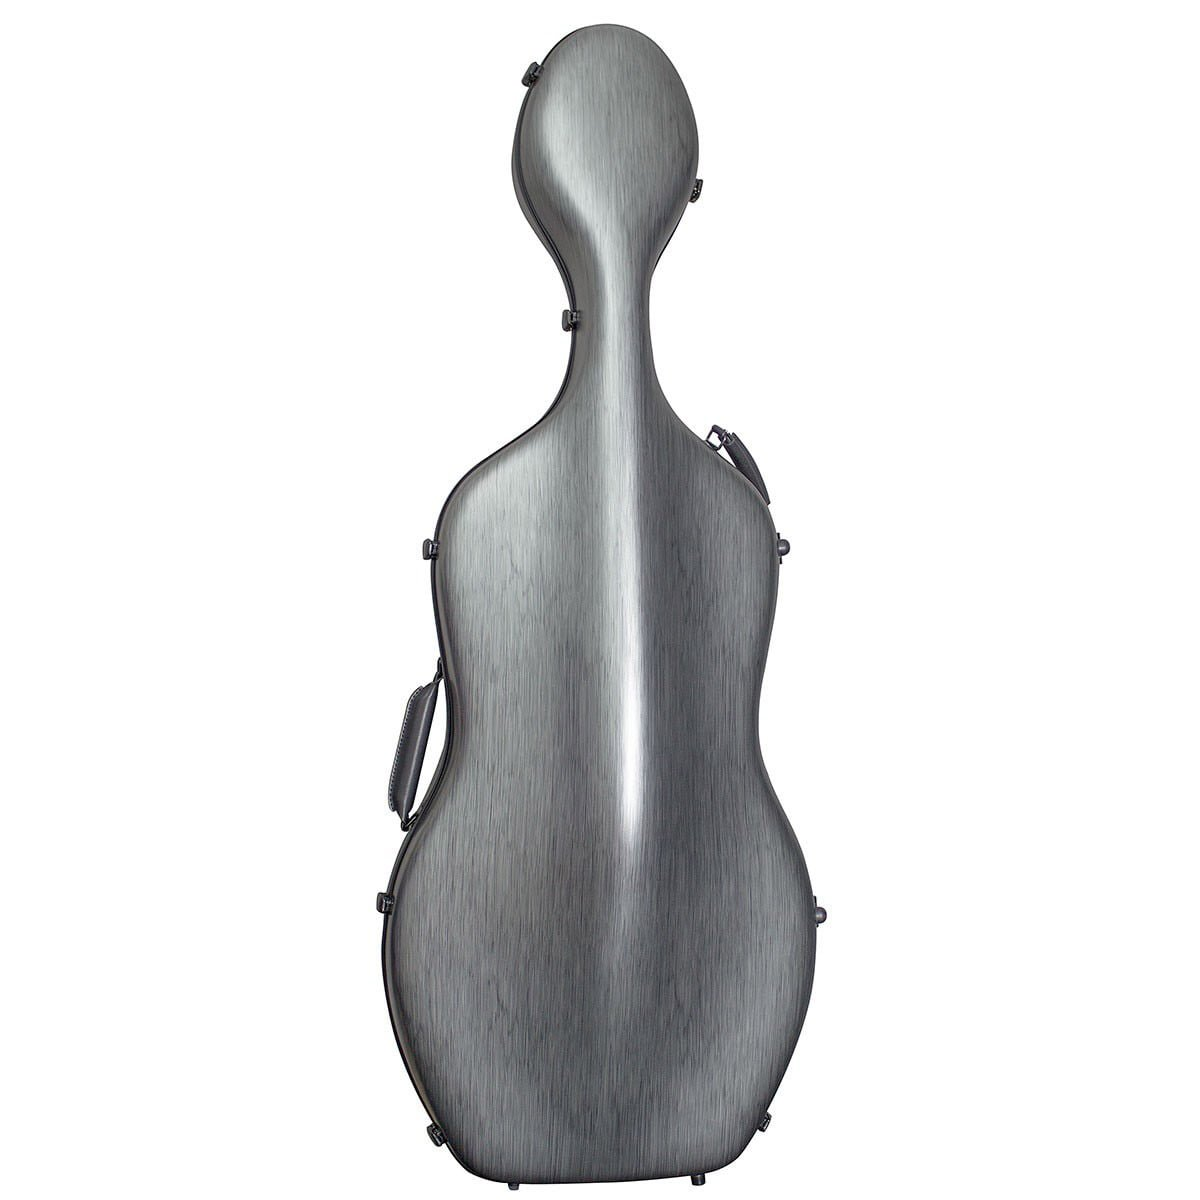 Hidersine Polycarbonate Cello Case in Brushed Silver